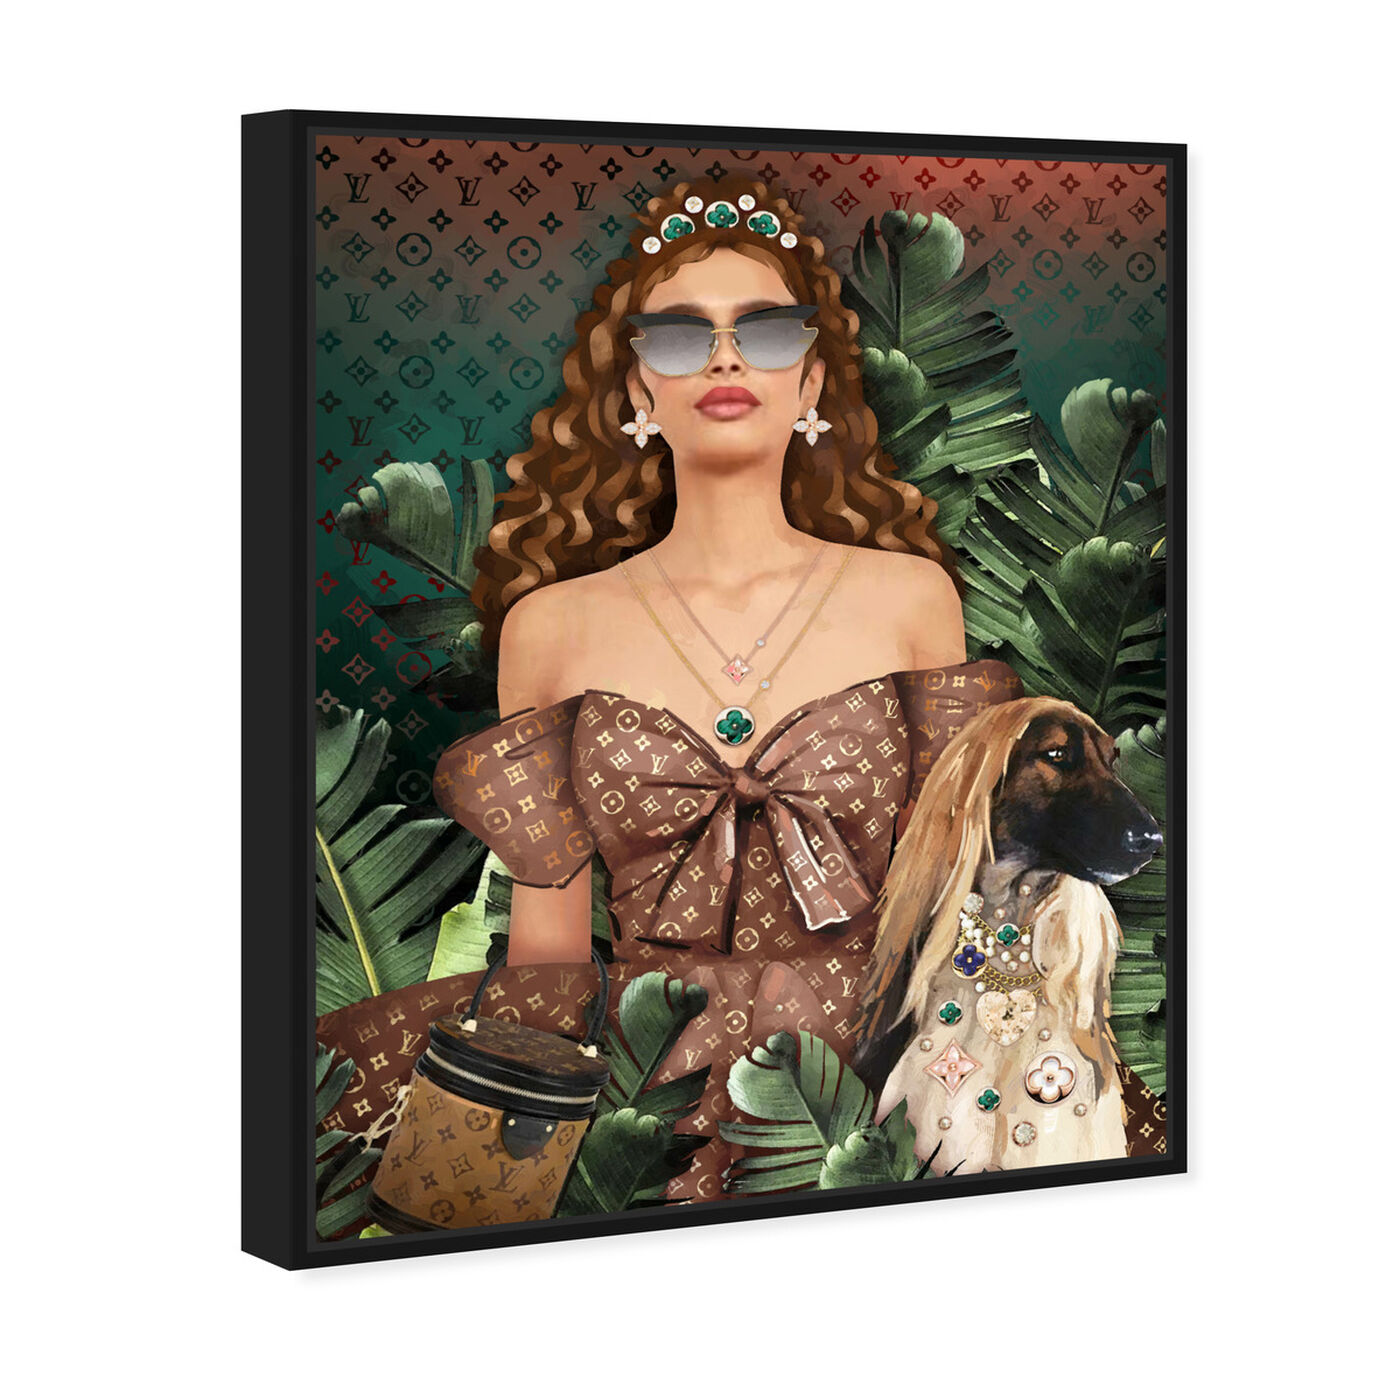 Angled view of Glam Camp featuring fashion and glam and portraits art.